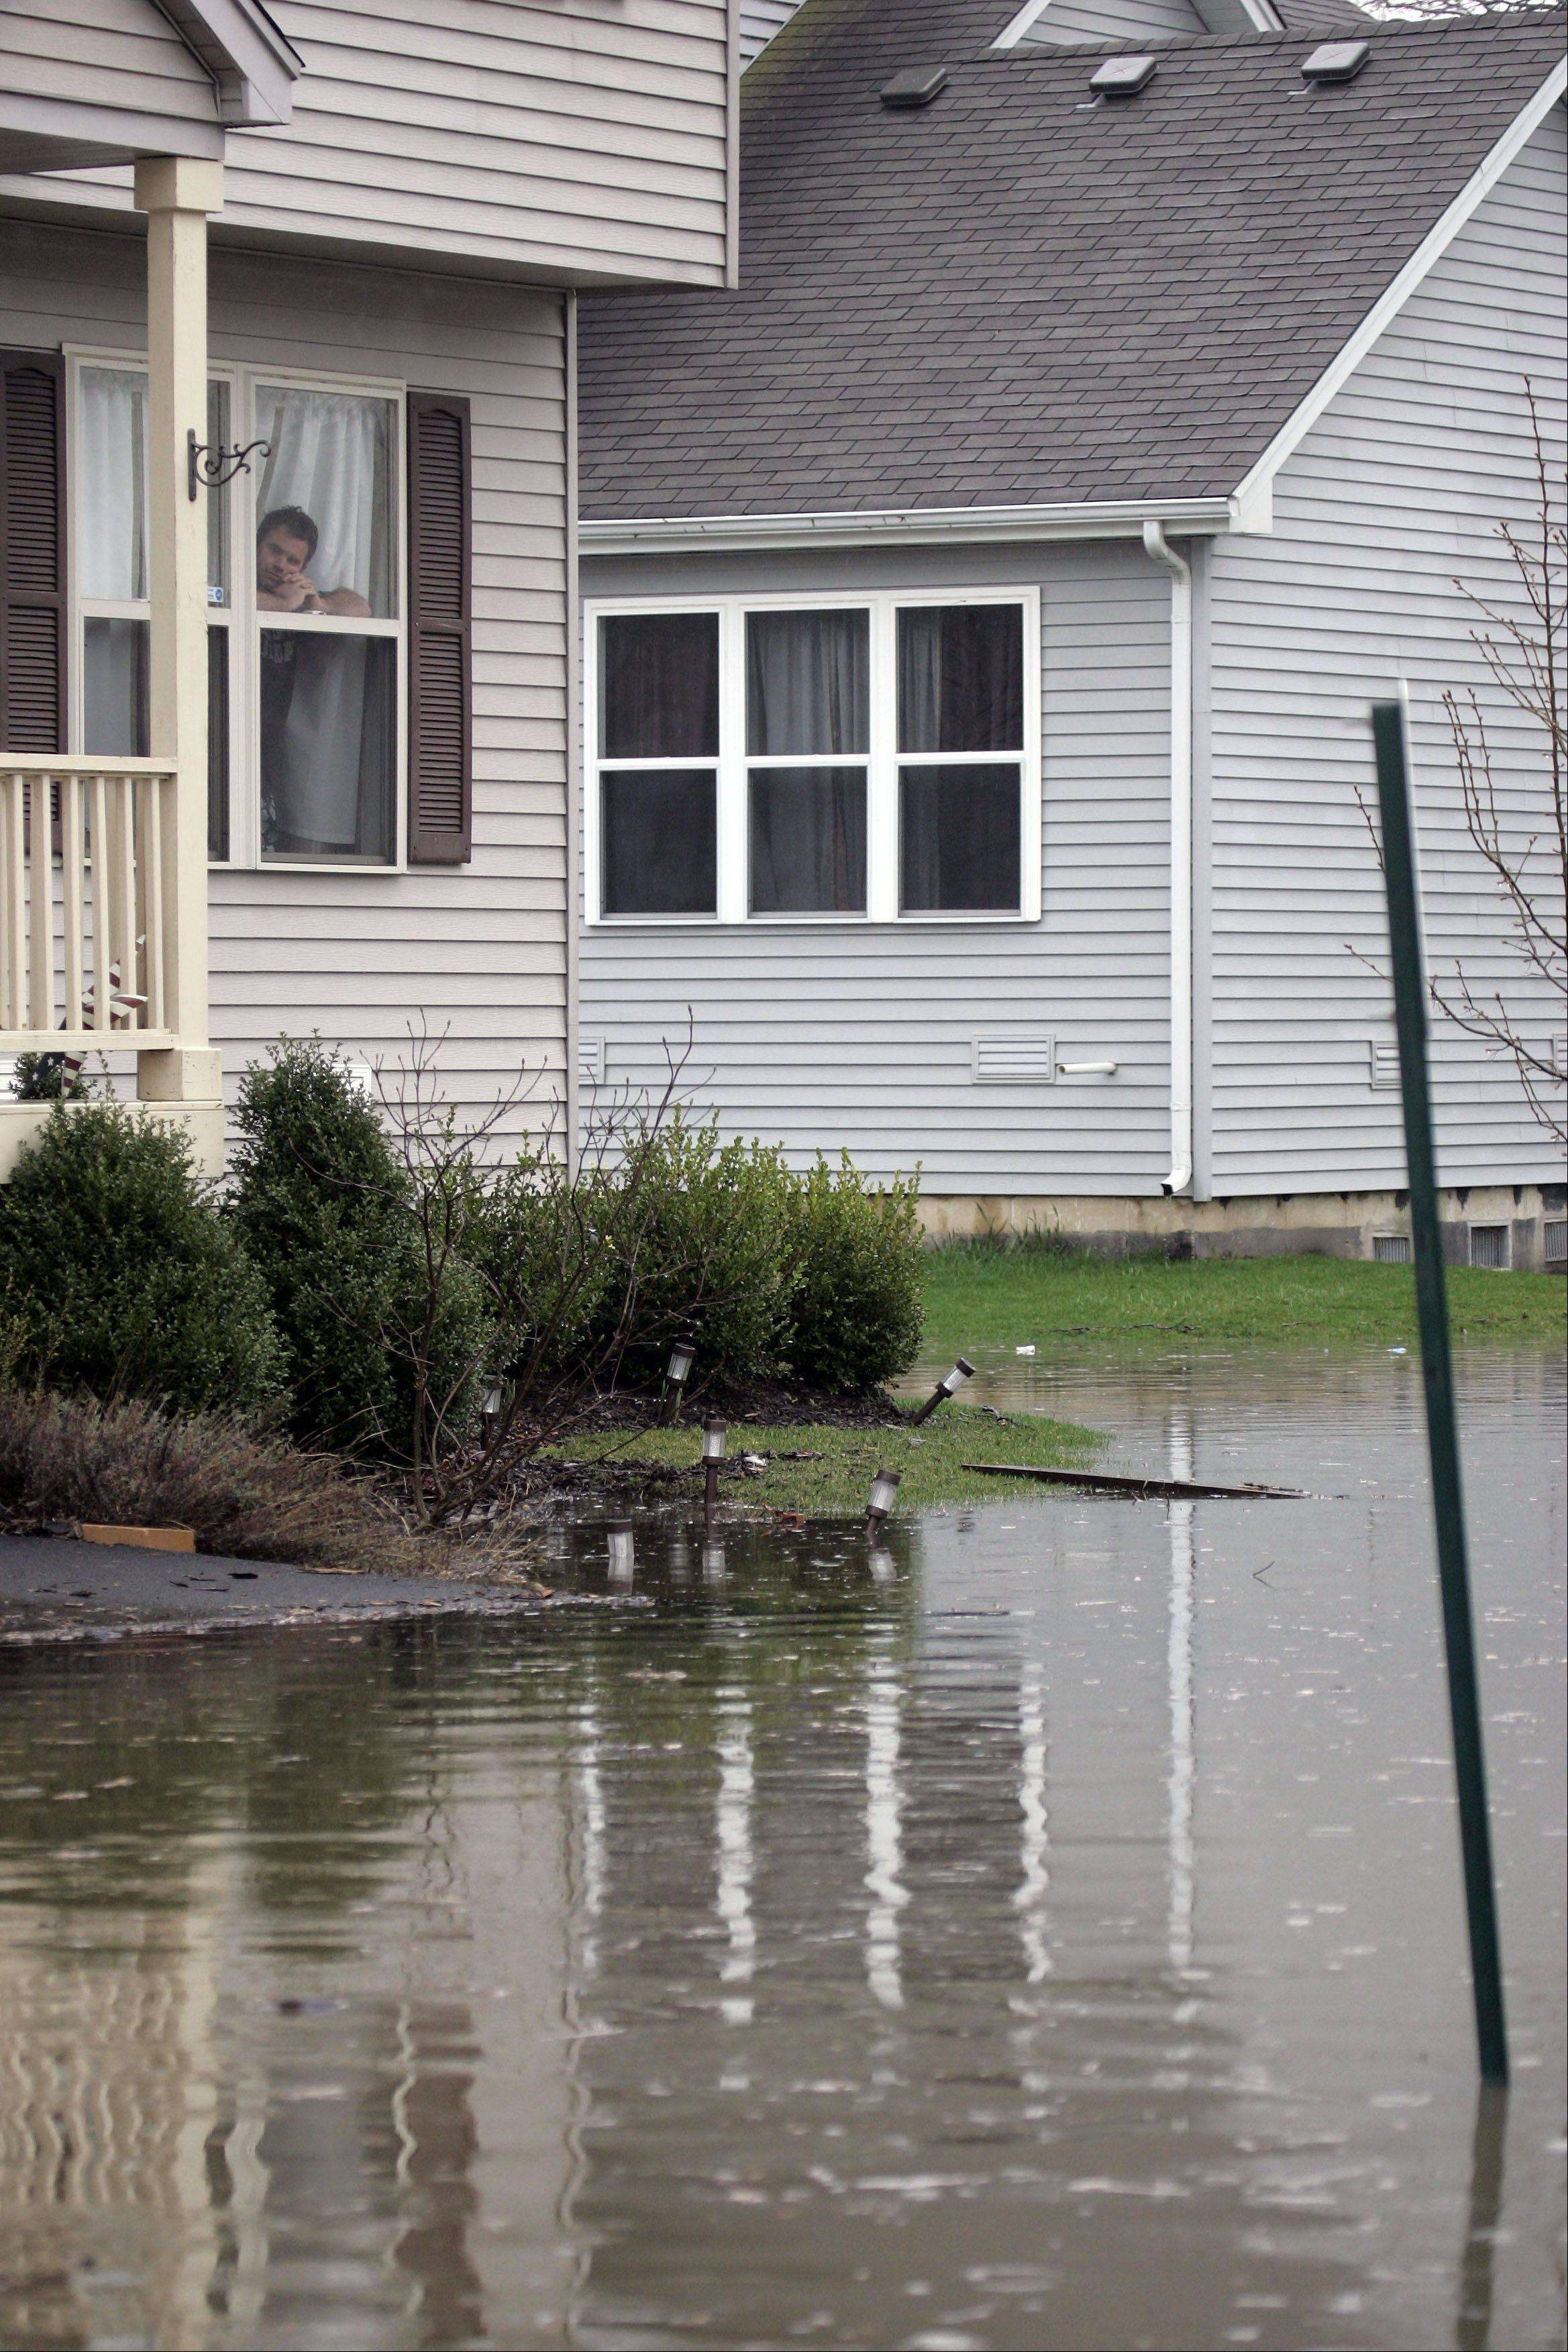 Flooded basements can be deadly. Use extreme care or call professionals to avoid electrocution.